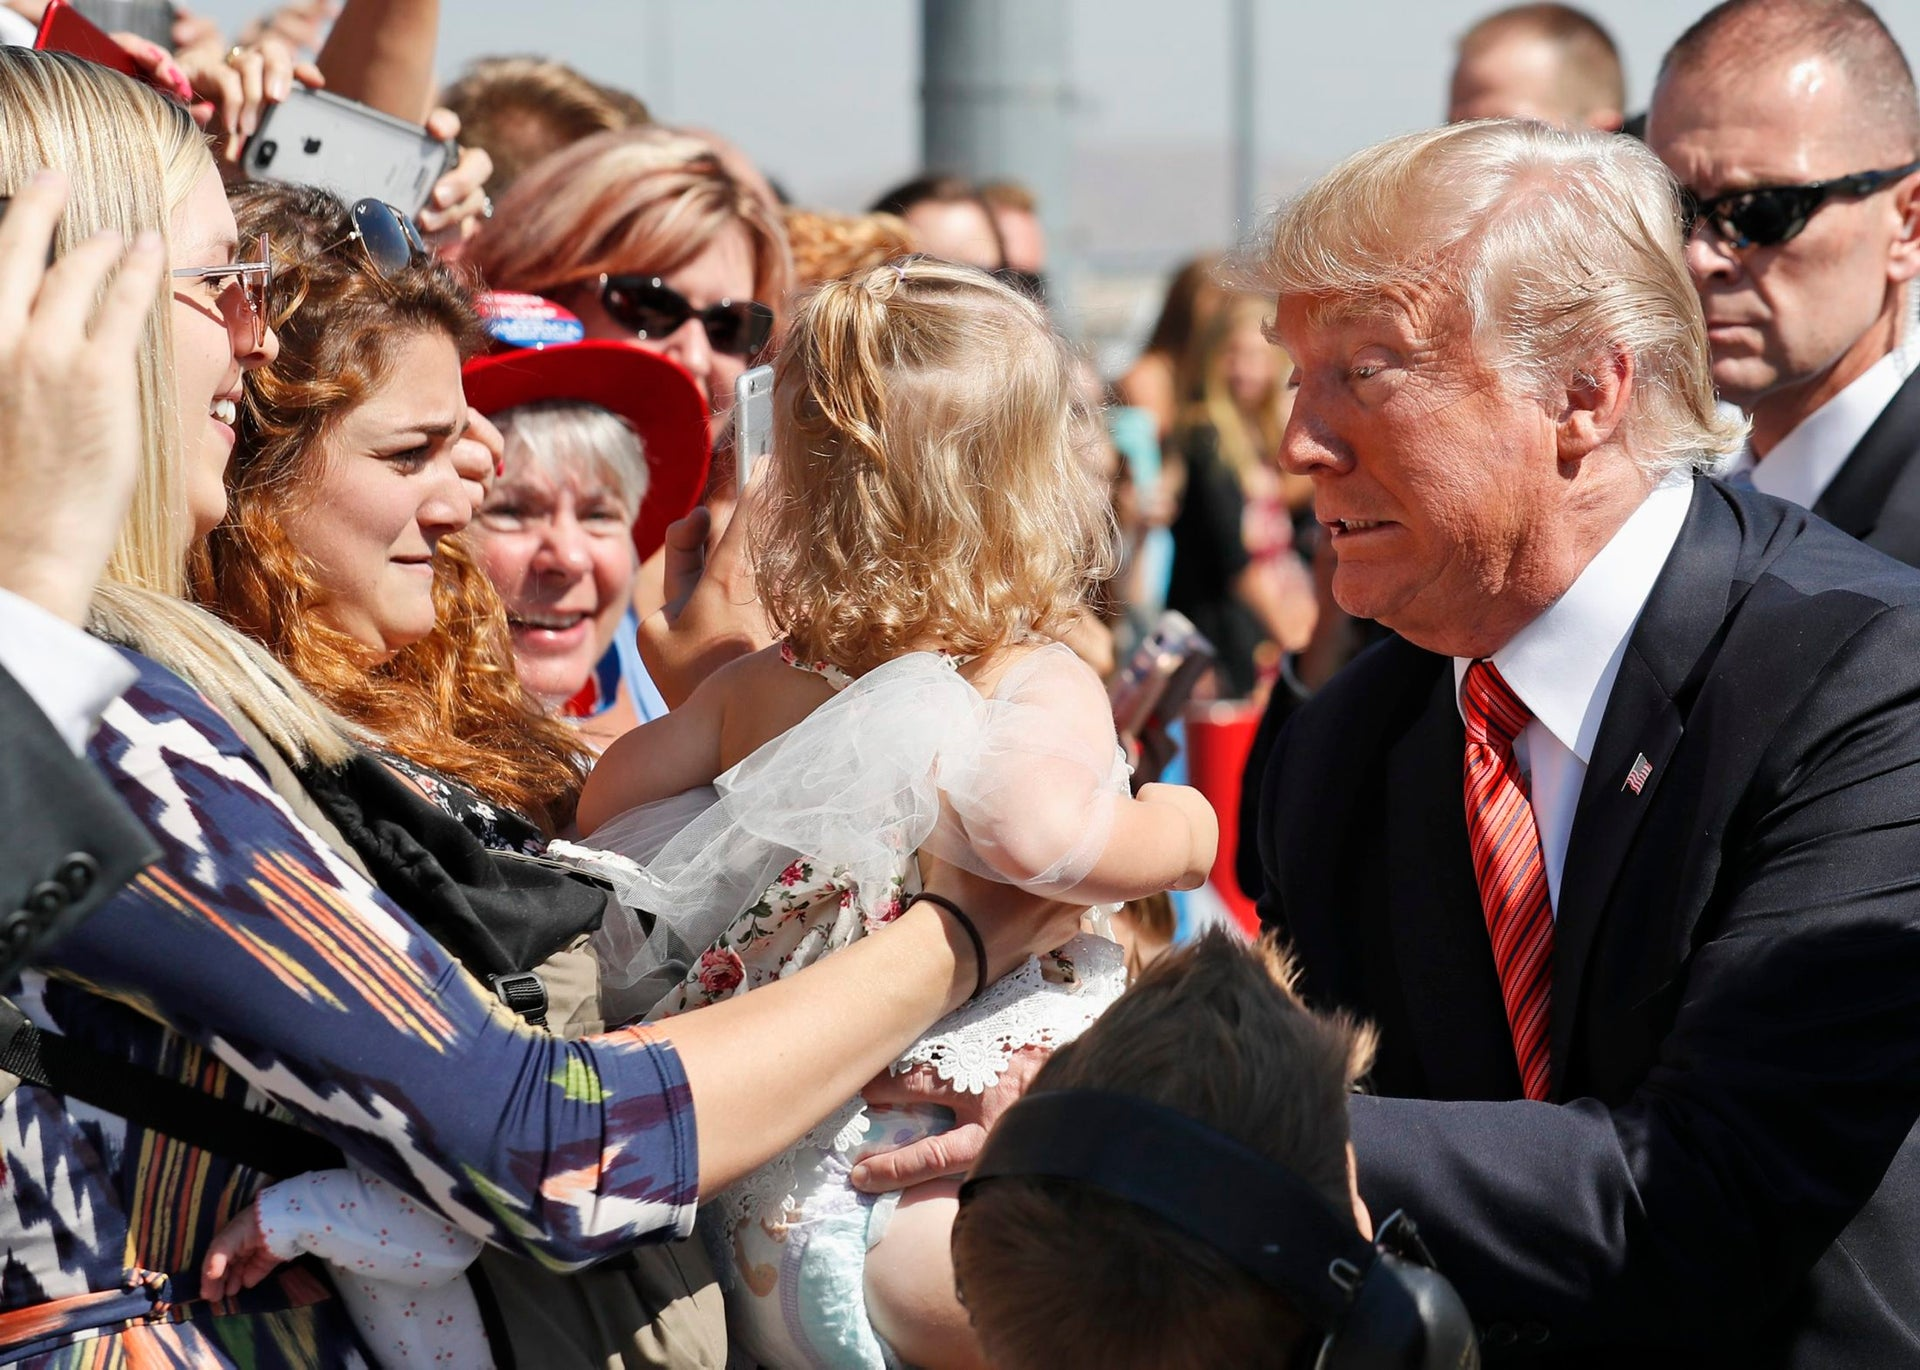 President Donald Trump struggles to hold a baby as he greets supporters as he arrives in Reno, Nev.,  Aug. 23, 2017.